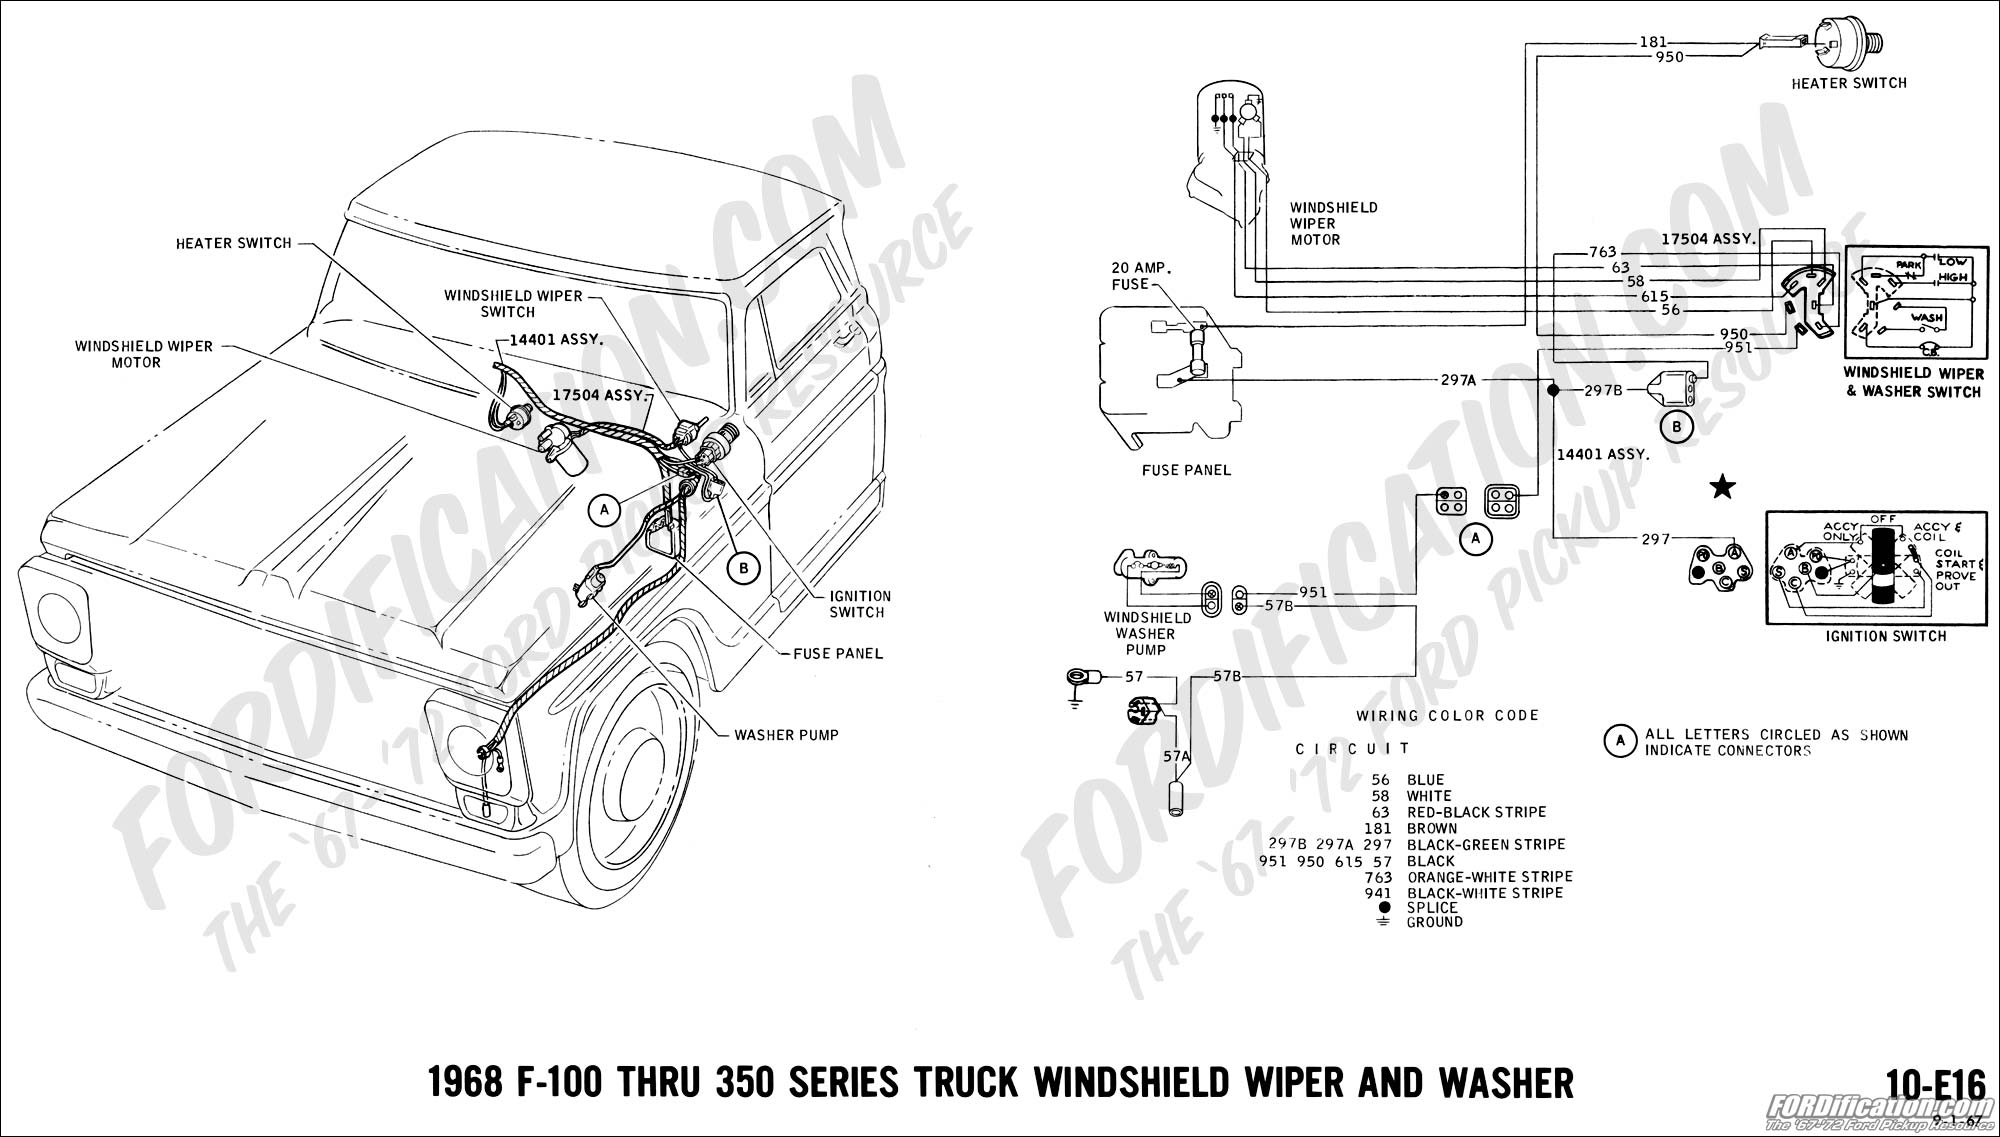 Echanting Might Chevy Alternator Wiring Diagram Start Power in addition 88 Chevy Truck Wiper Motor Wiring Diagram together with 1230412 Fuel Gauge Fuel Sending Unit also 1990 Ford F150 Wiper Motor Wiring Diagram in addition HP PartList. on 1967 chevy c10 wiring